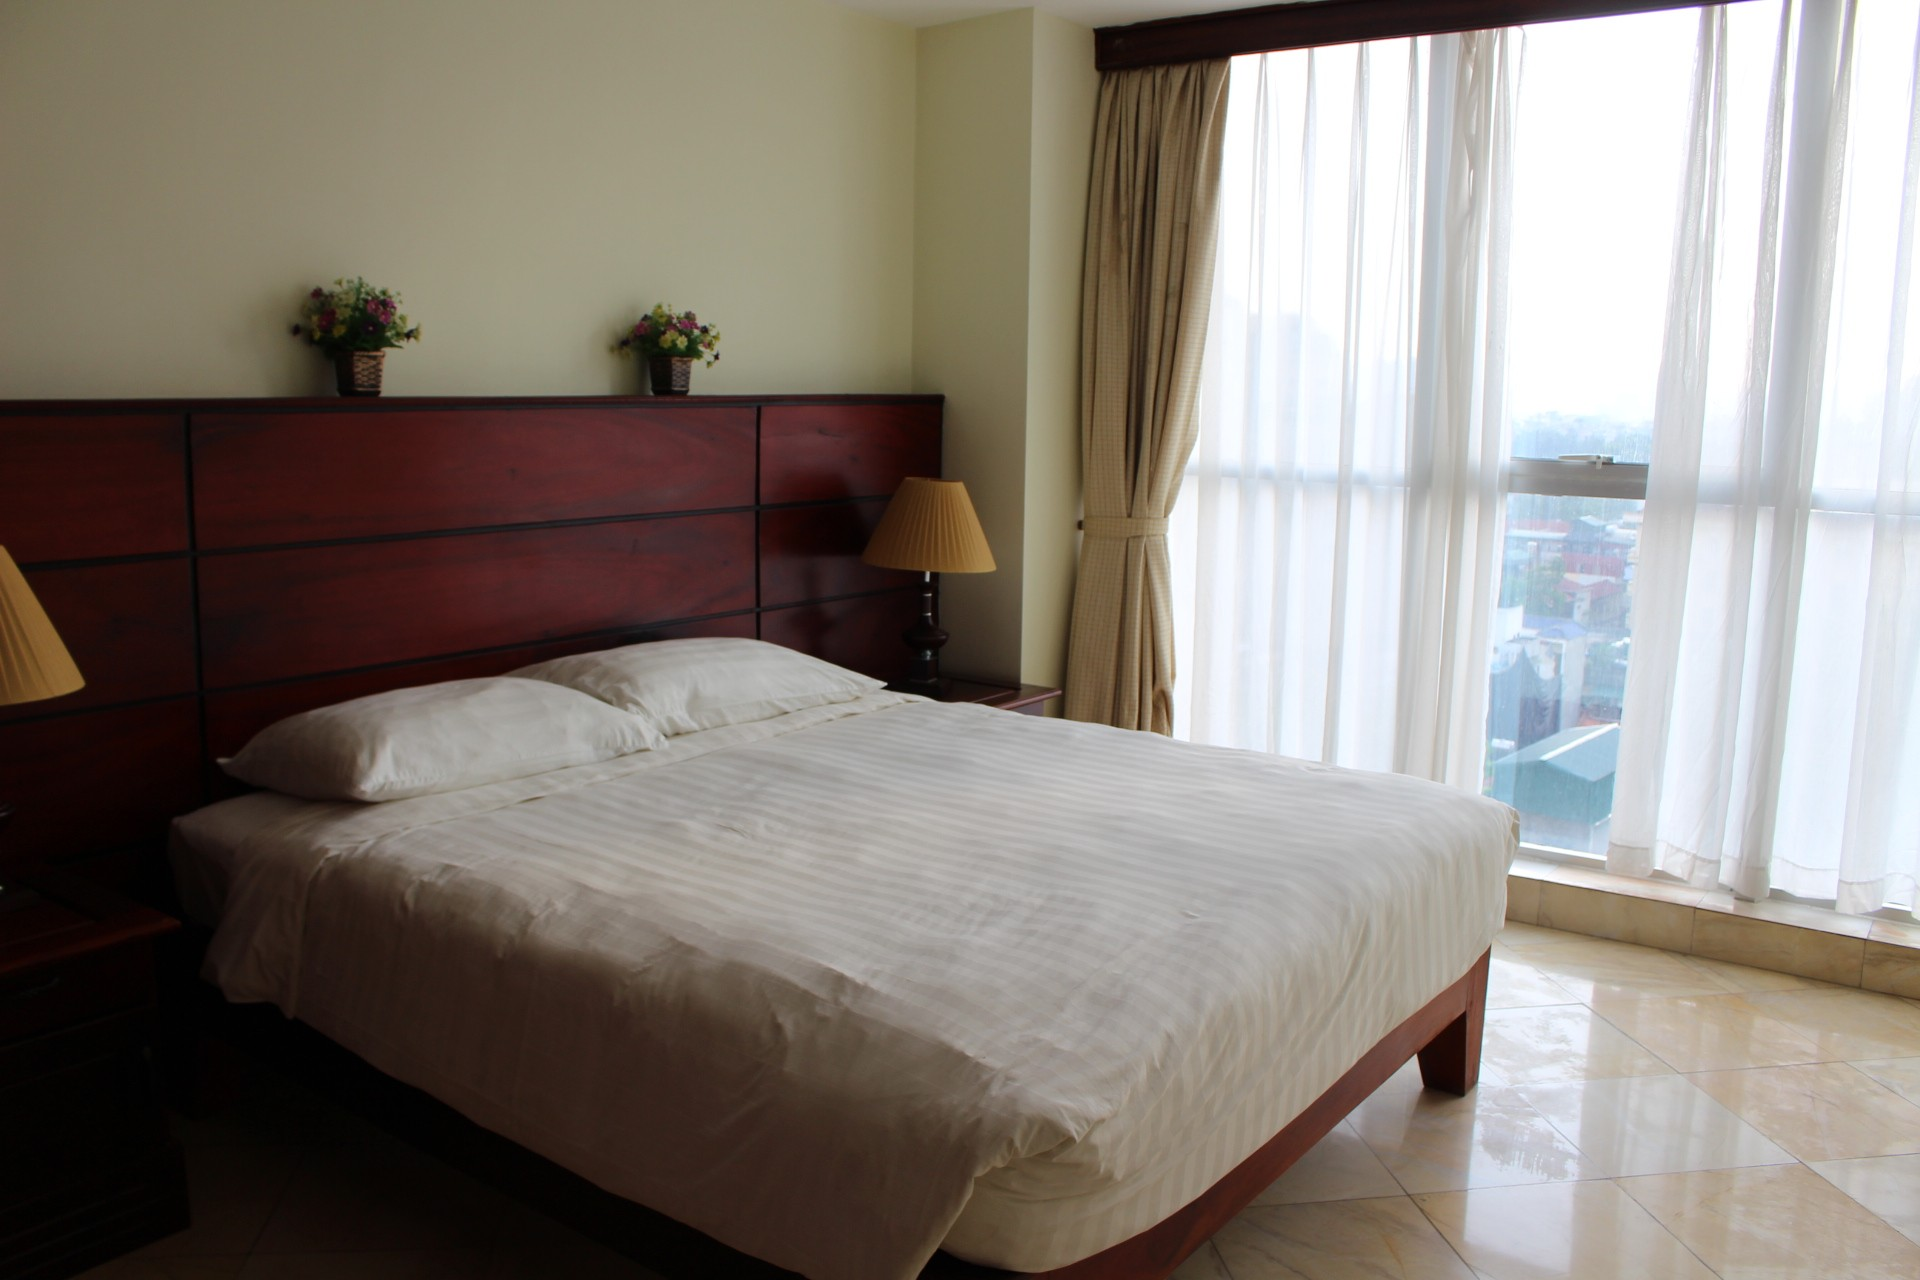 3 bedrooms apartment in Hai Ba Trung for rent